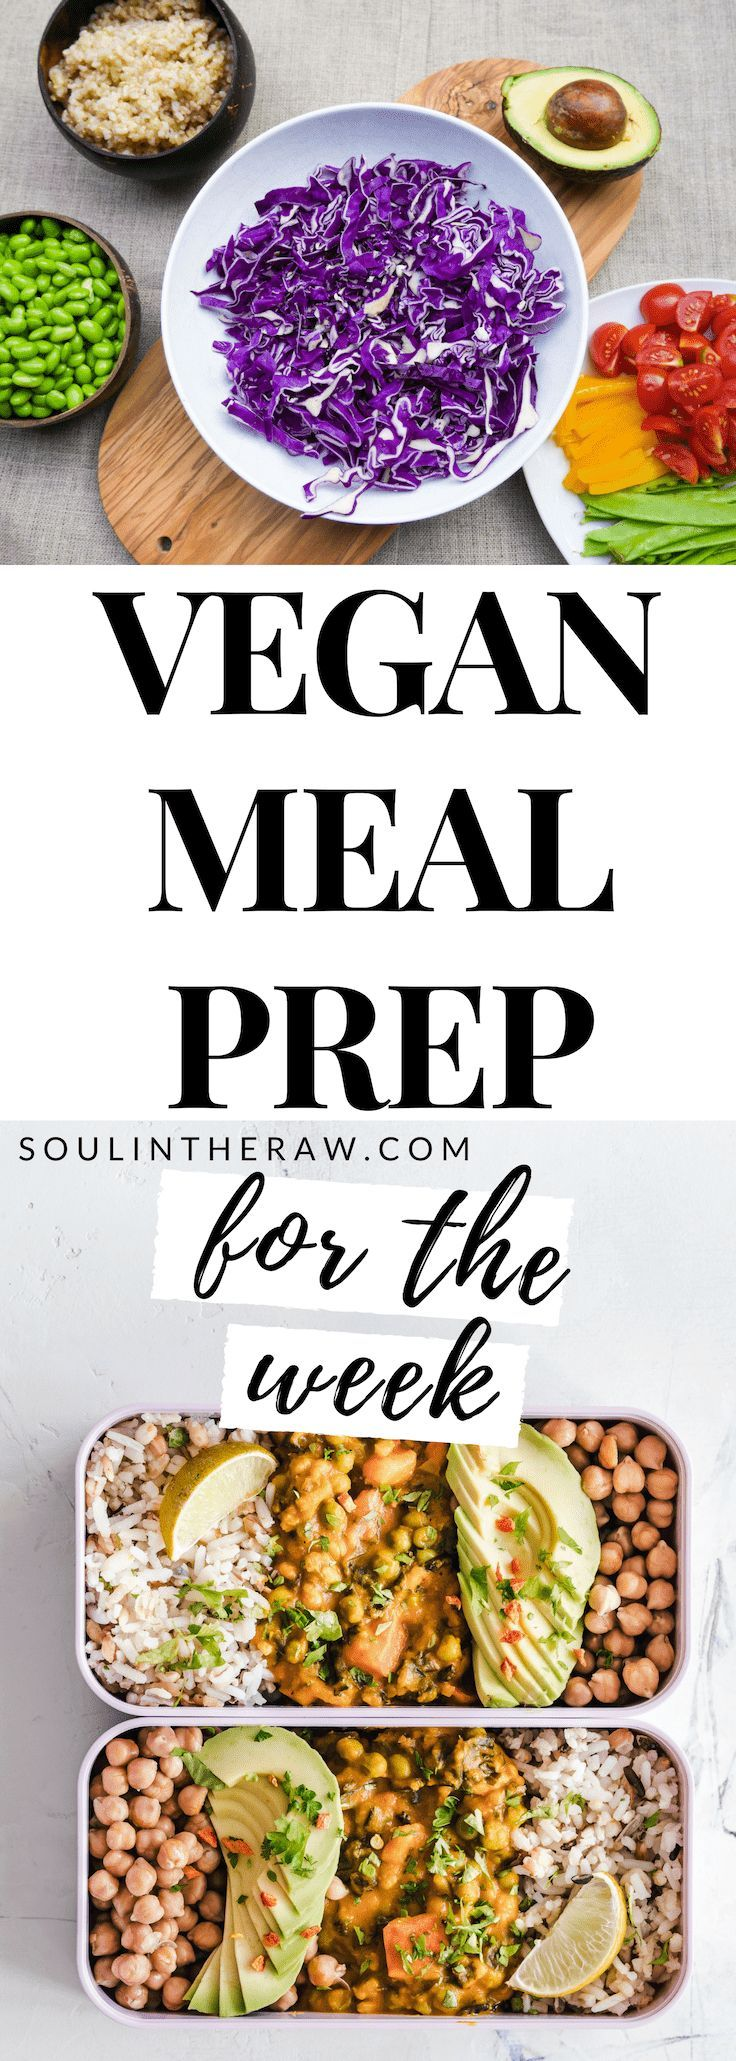 Vegan Meal Prep: Time-Saving Tips and Tricks for Easy Meals images